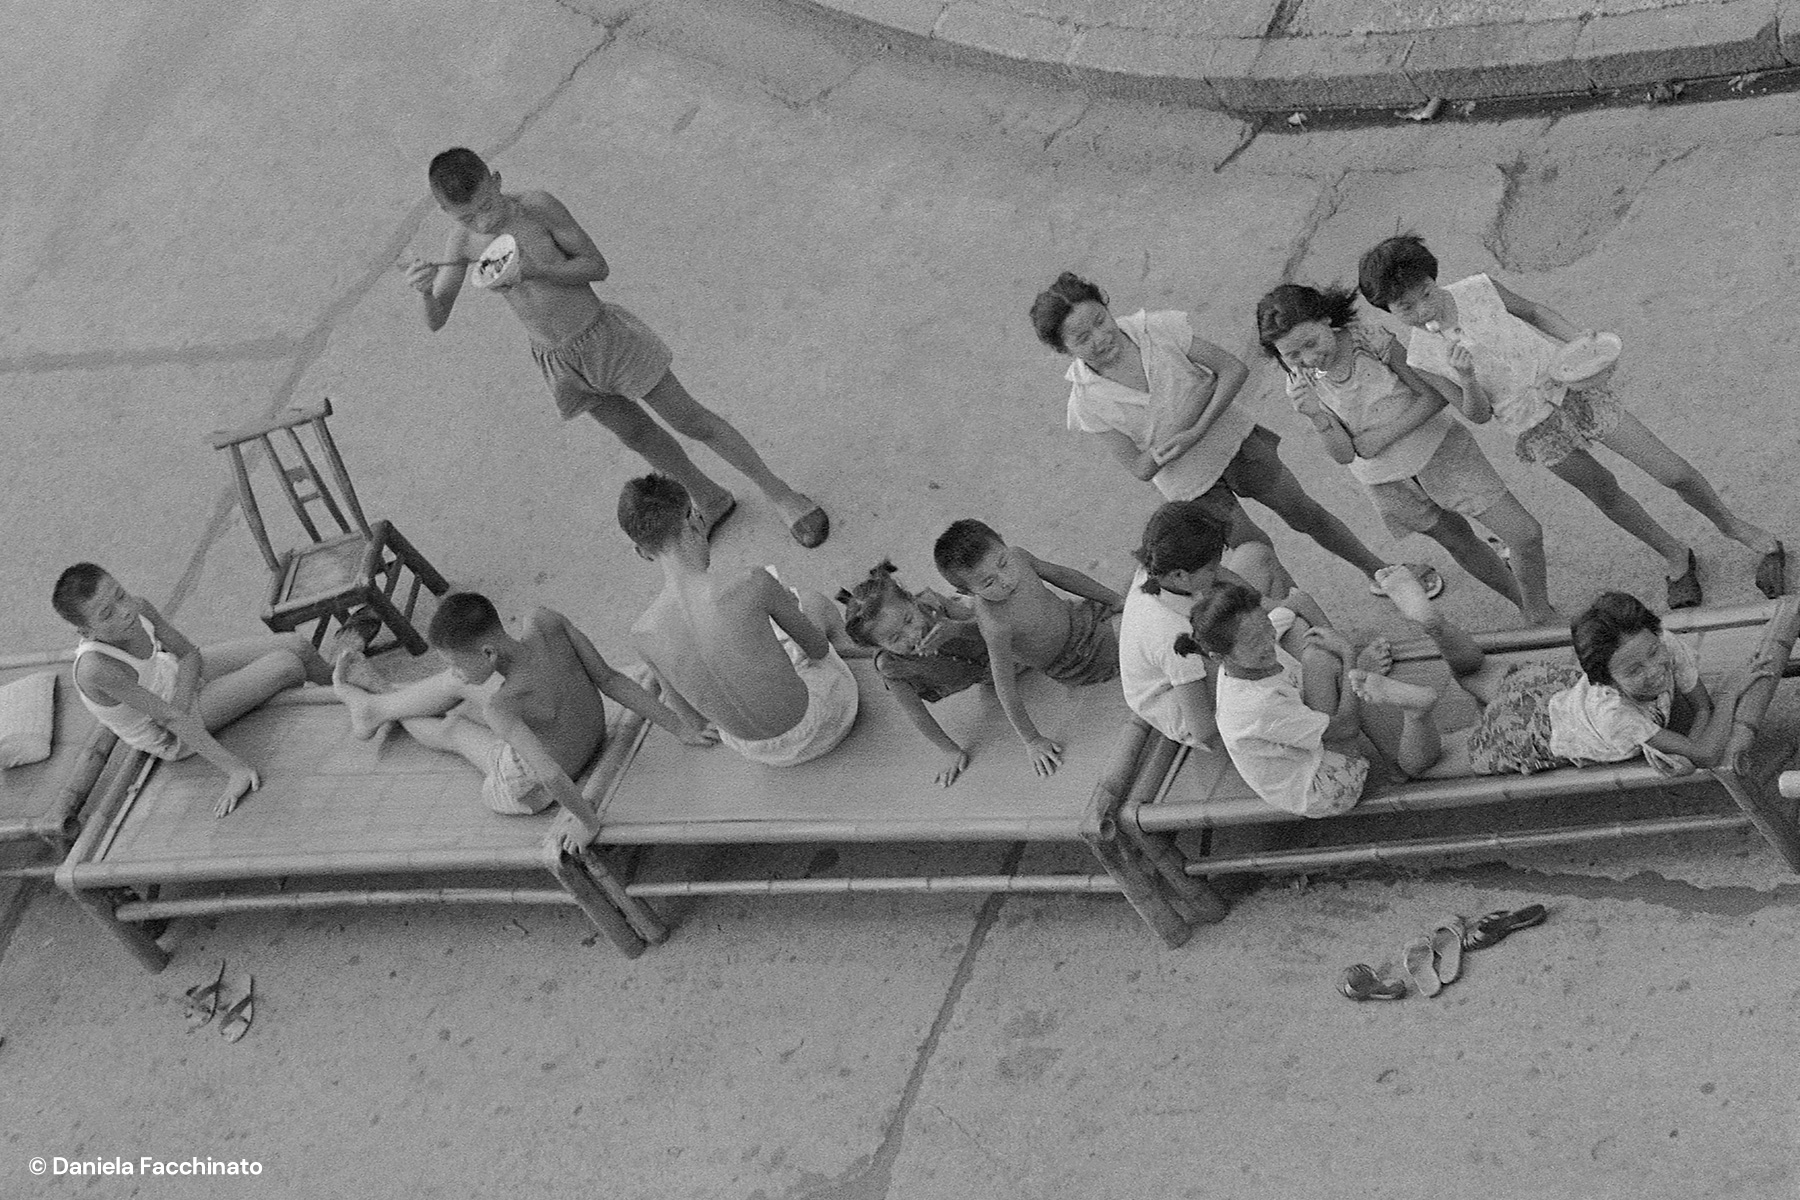 Xi'an, Shaanxi, China, 1976. Children eat their meals on cots along the pavements, after the Tangshan earthquake